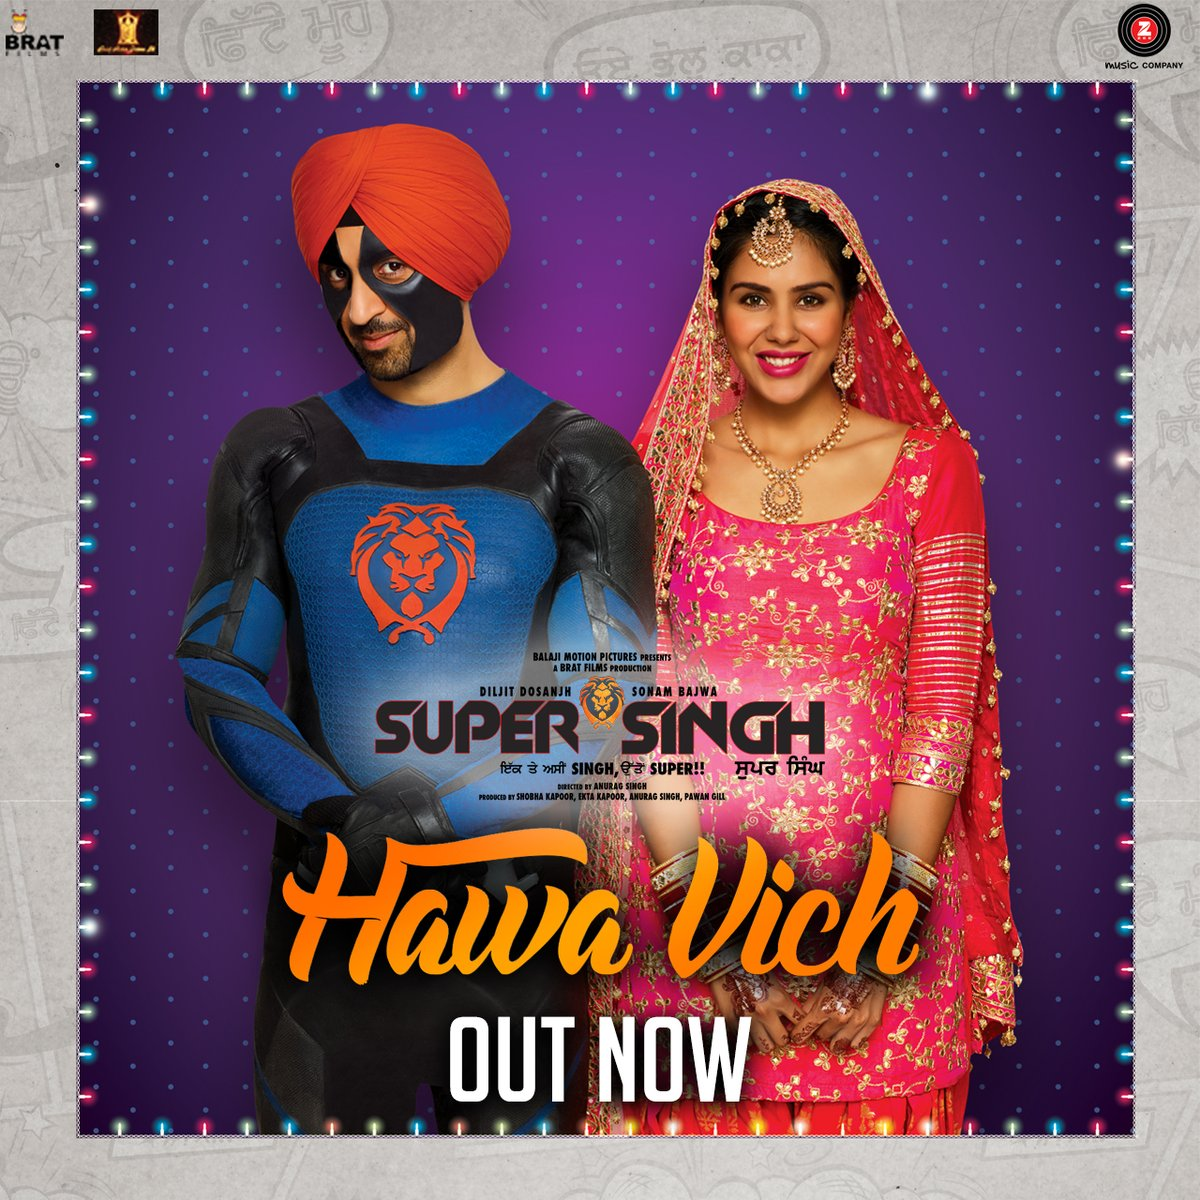 Watch : Diljit Dosanjh starrer Super Singh first song Hawa vich is out